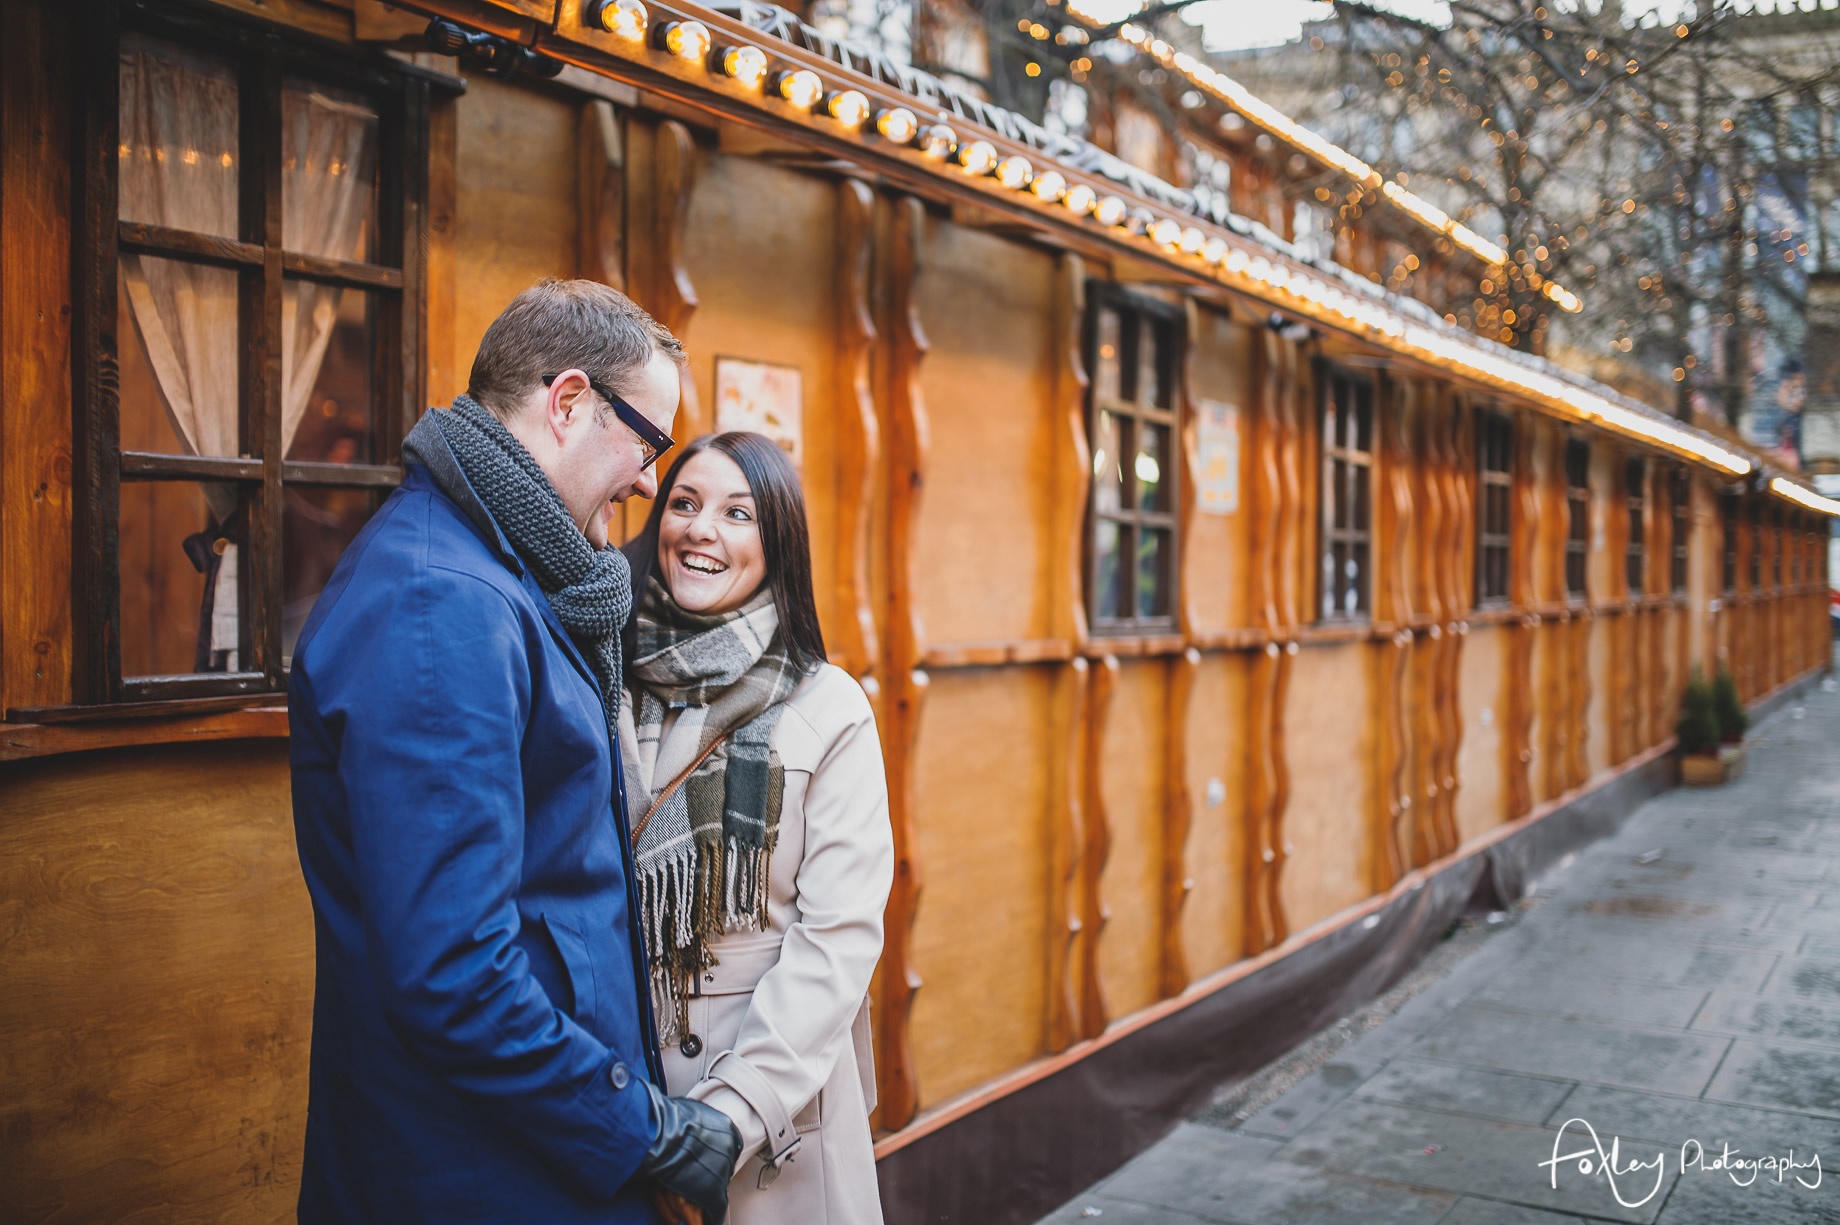 Angela and Andrew's Pre-Wedding Shoot at Manchester Christmas Markets 007